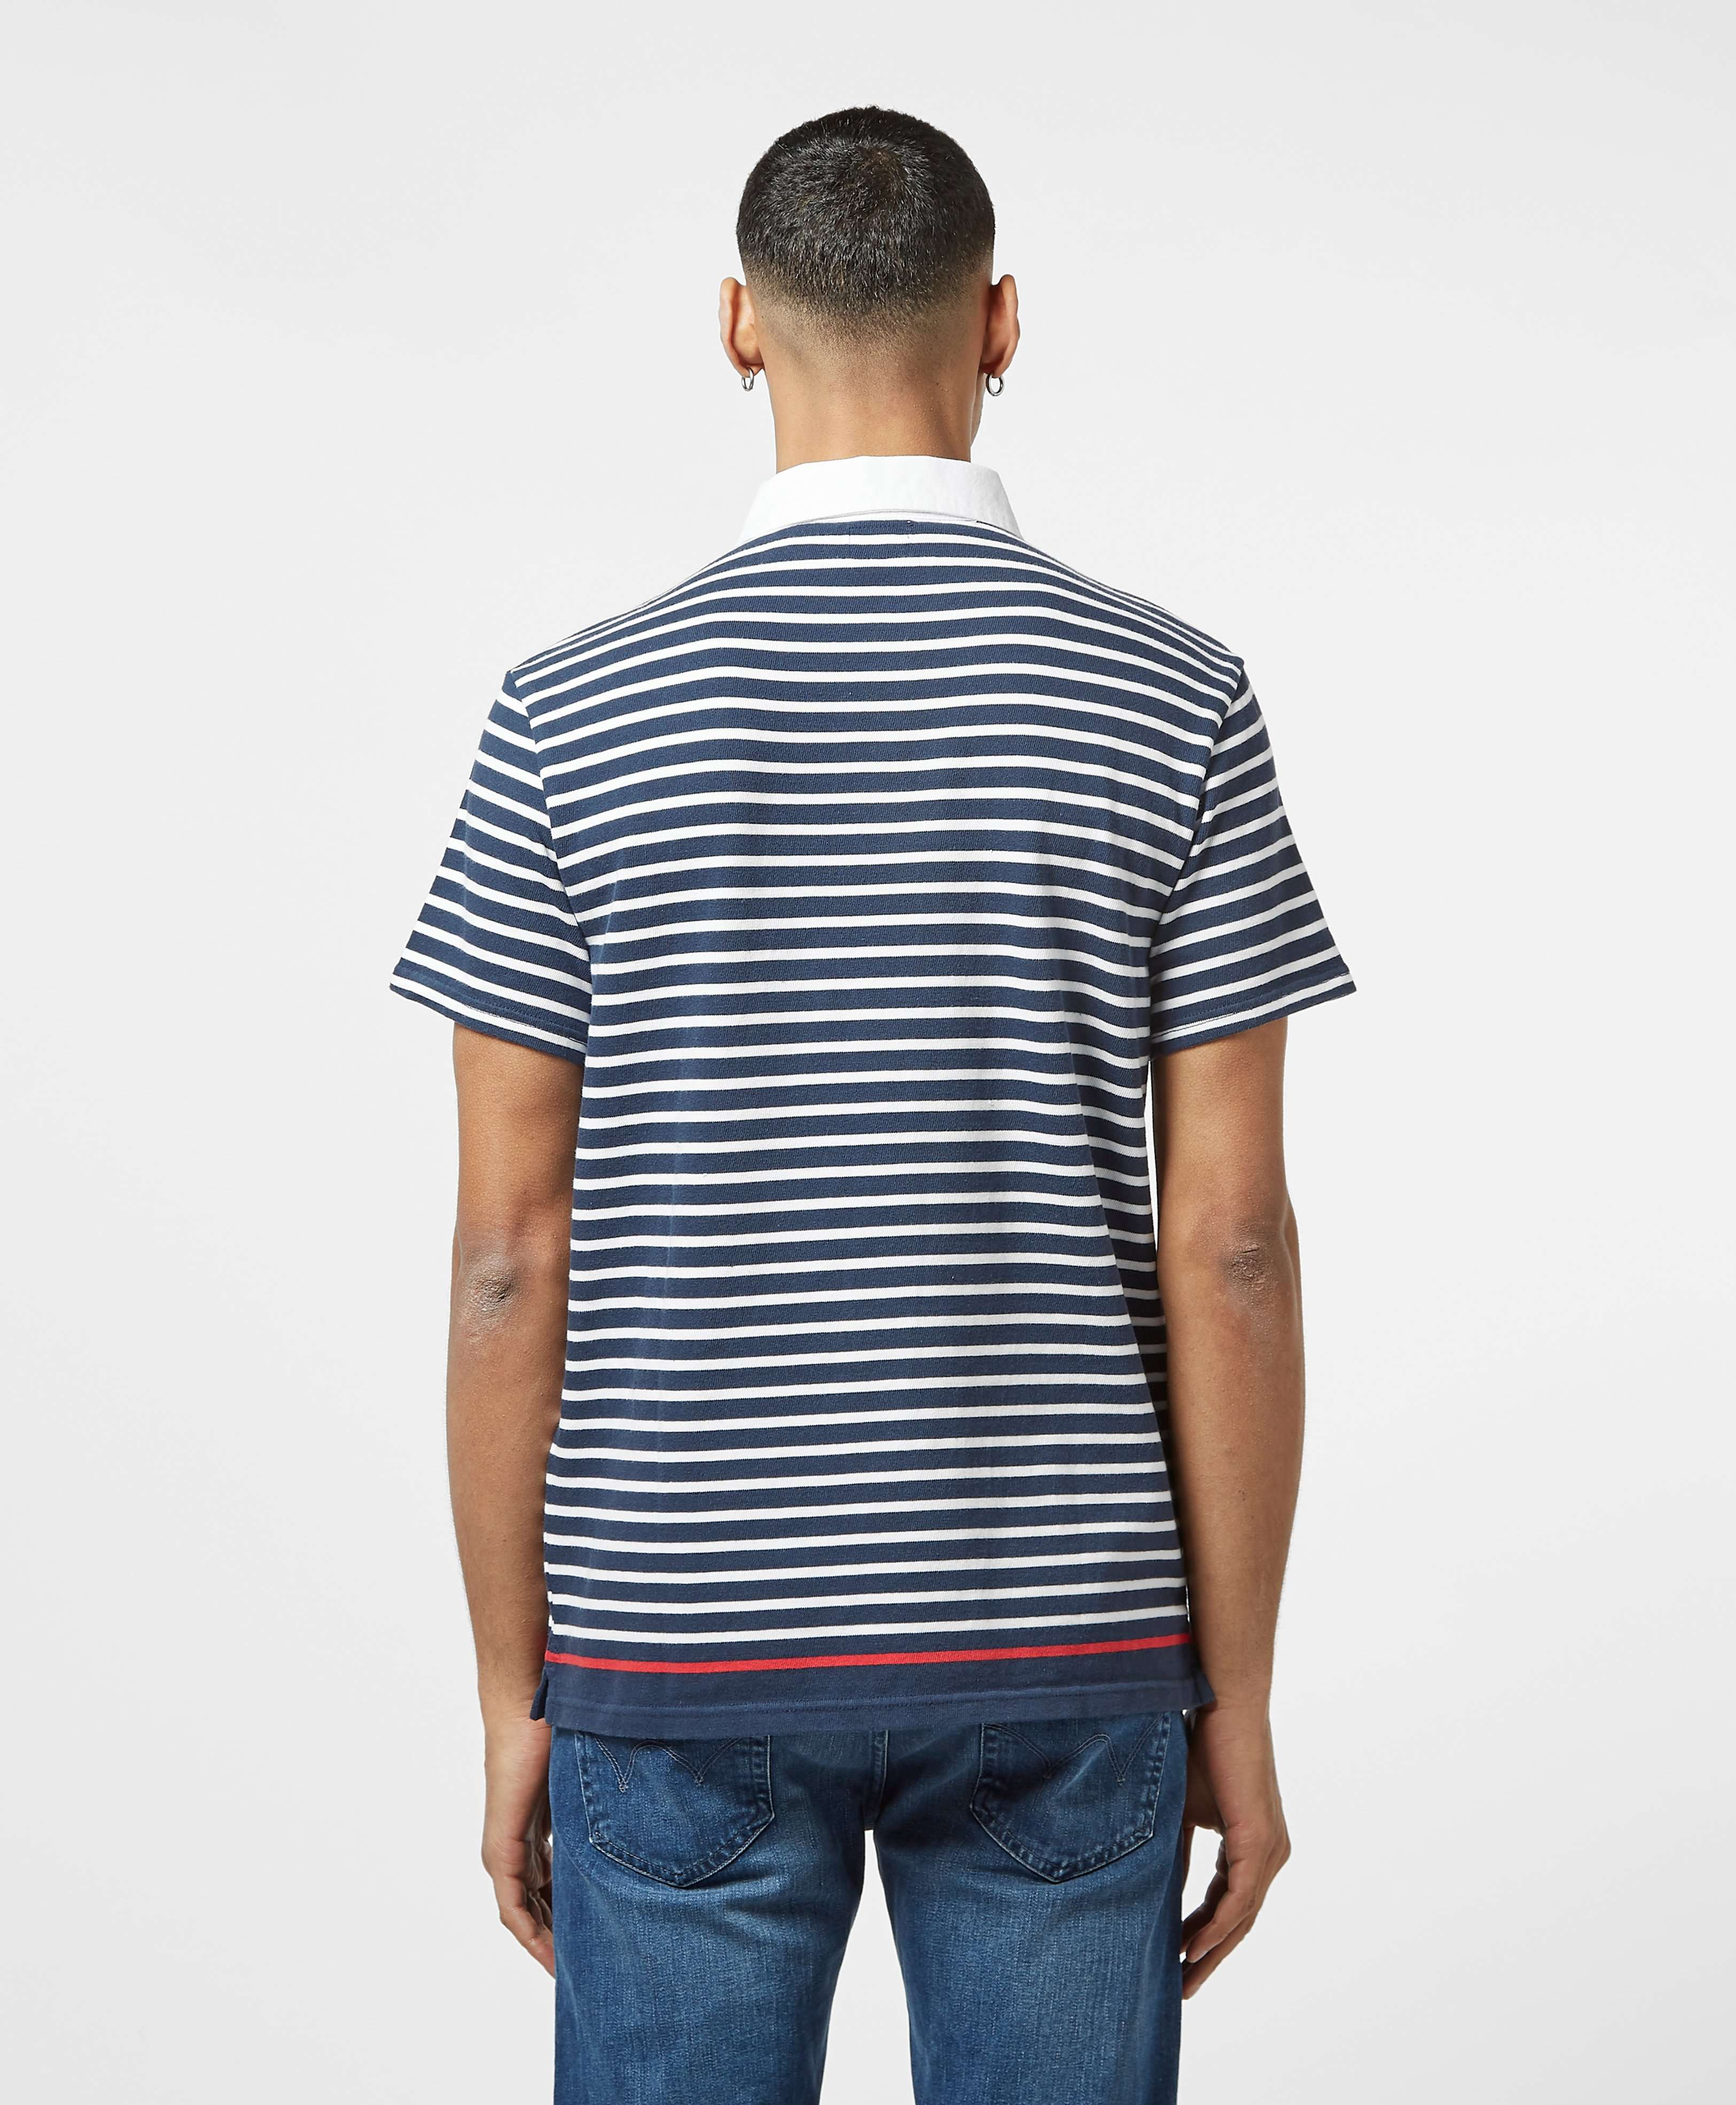 Levis Stripe Short Sleeve Rugby Polo Shirt